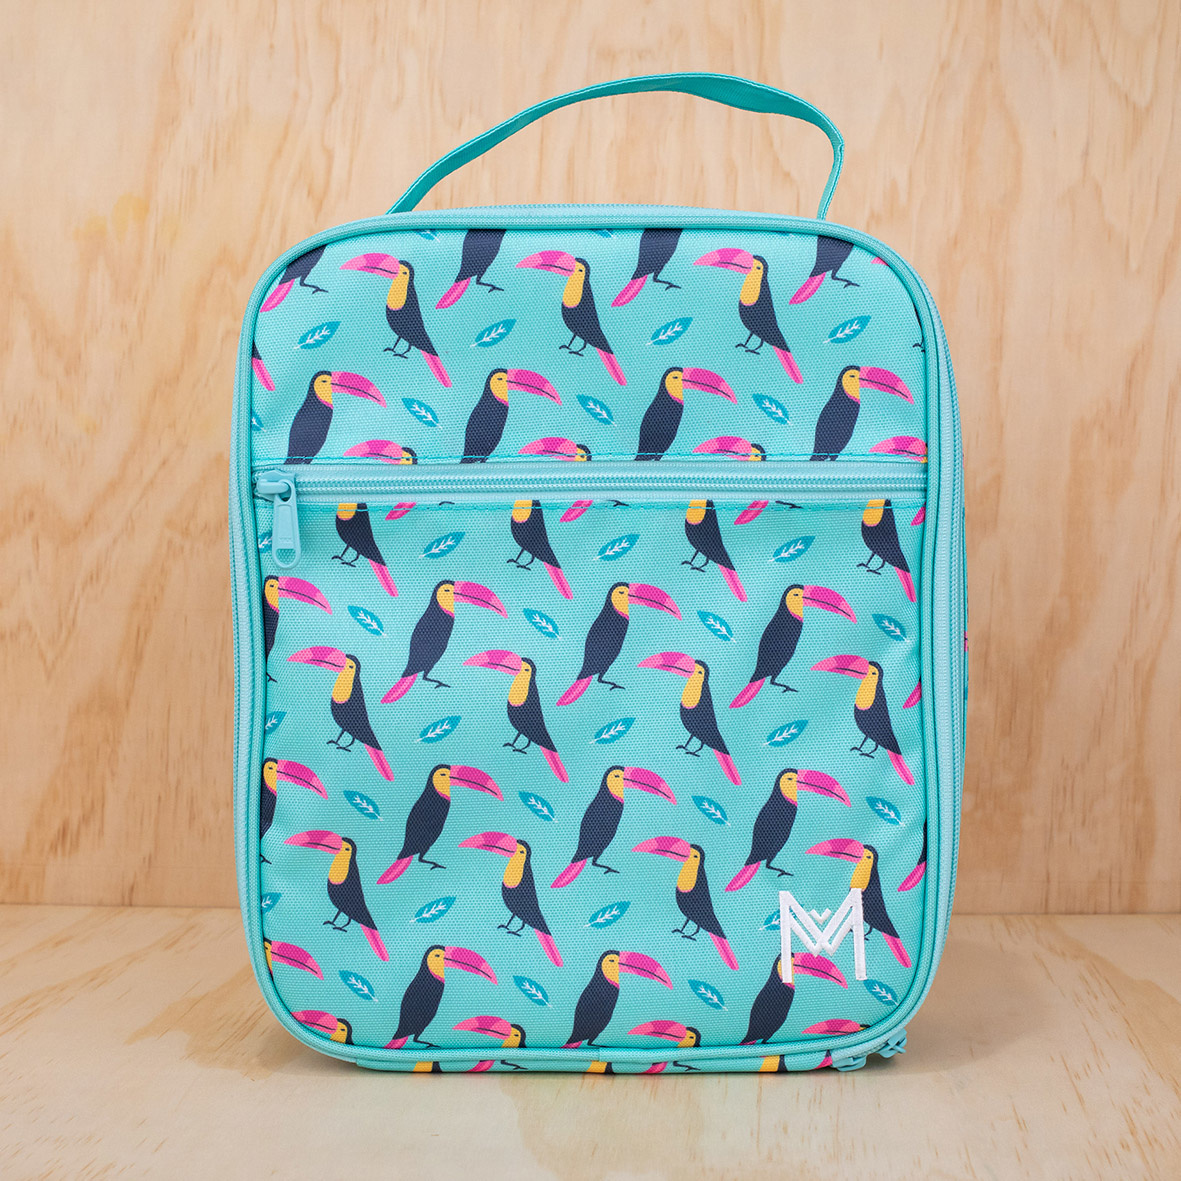 Montii insulated Lunch Bag - Toucan-1